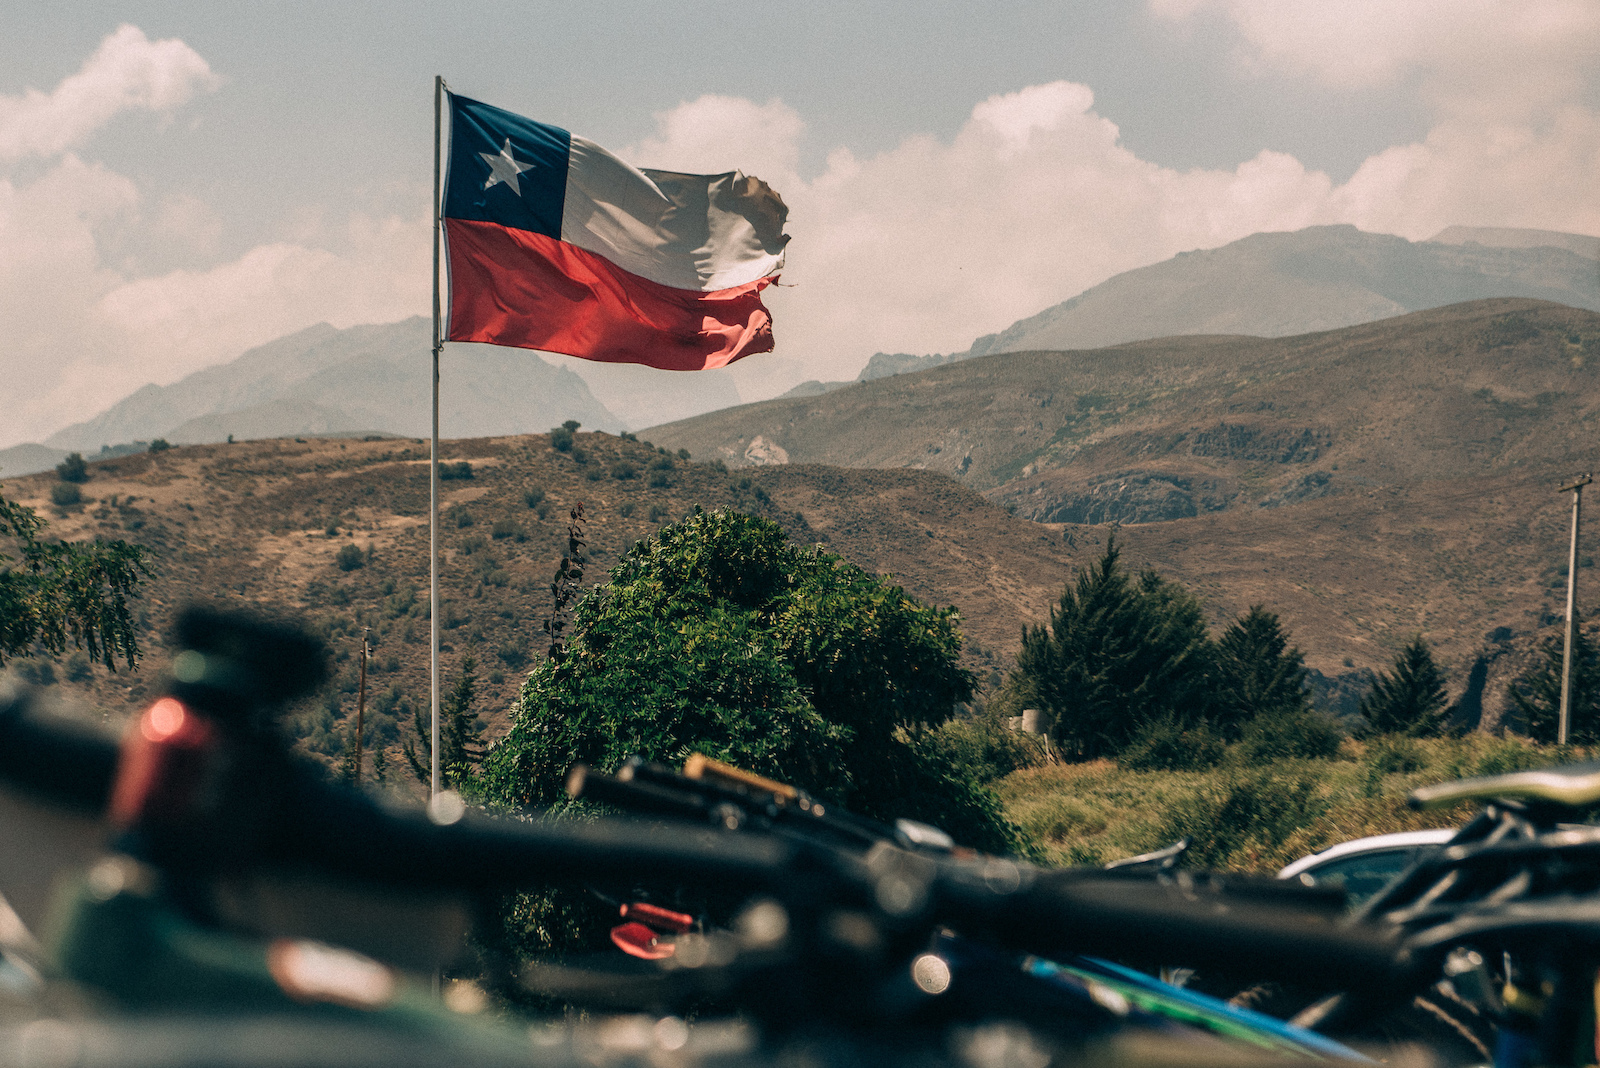 Time to ride some bikes in the Andes off Chile.